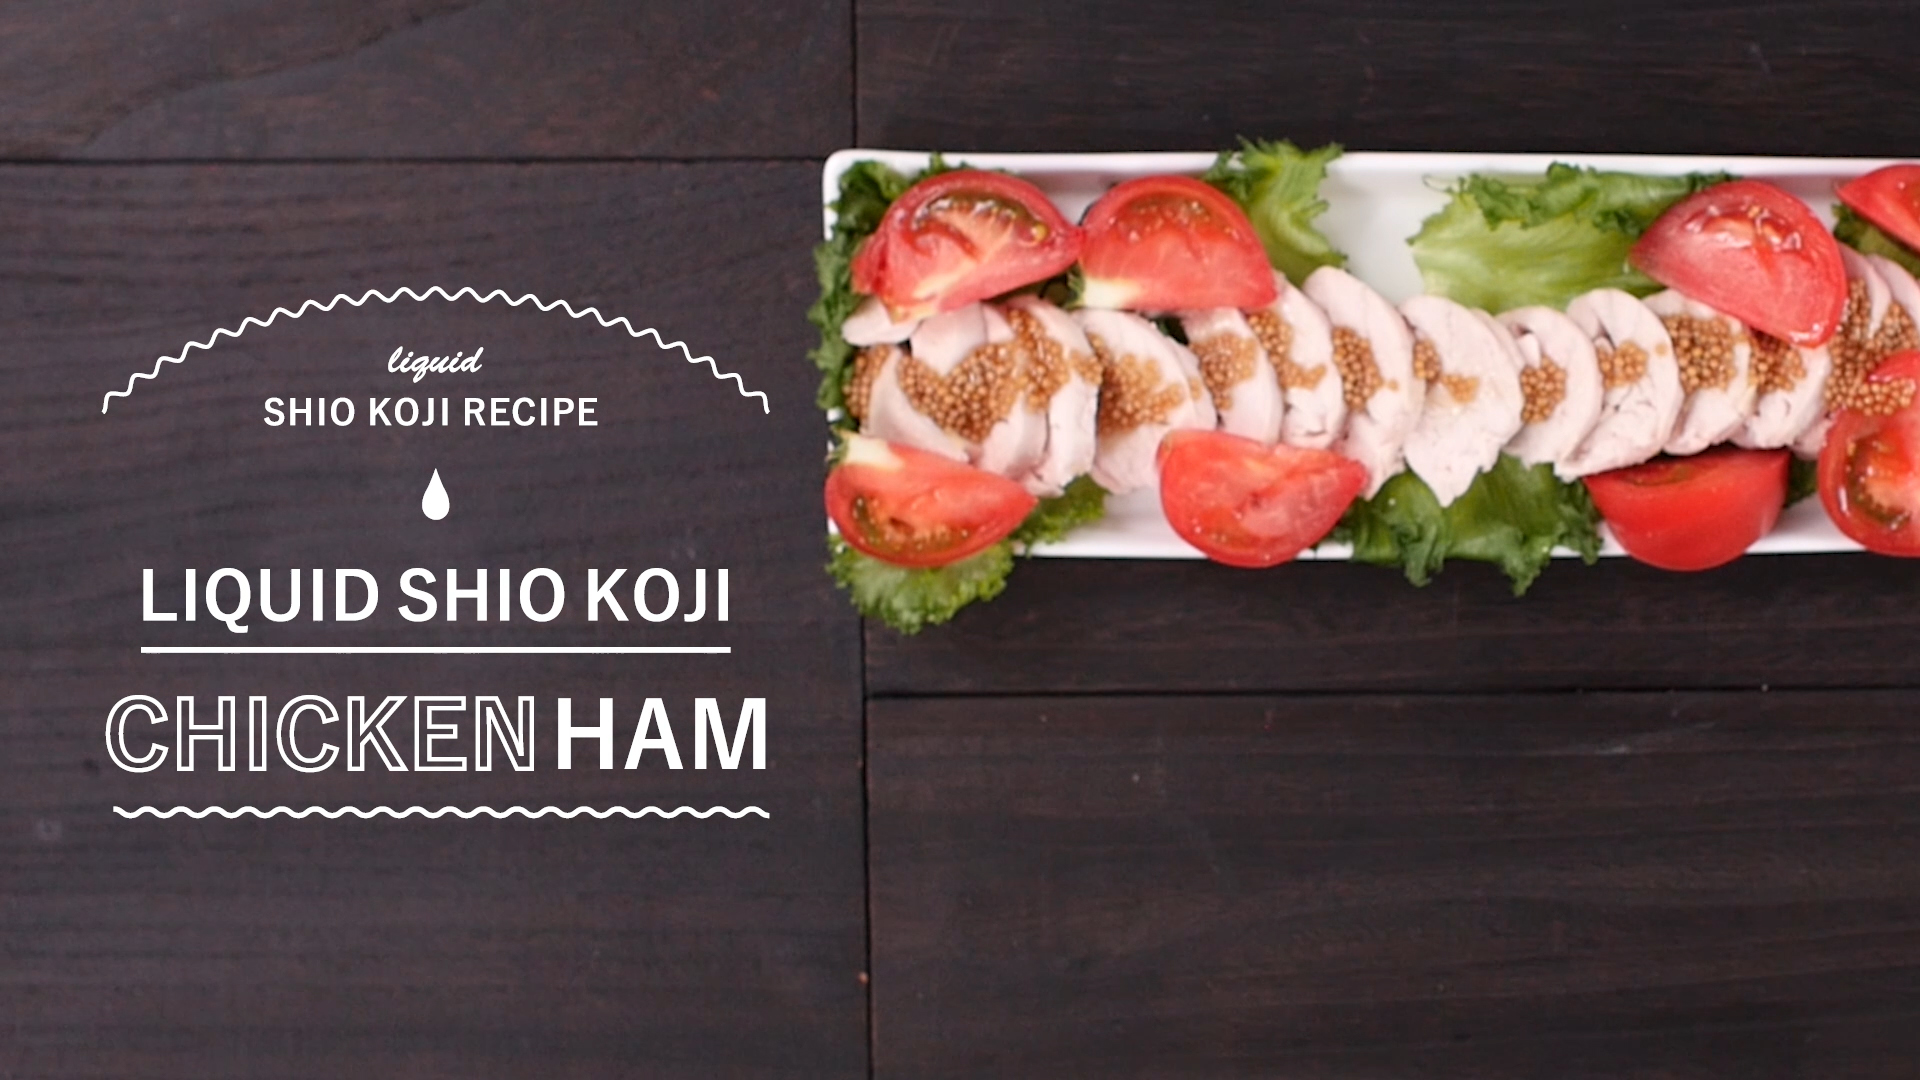 【LIQUID SHIO KOJI RECIPE CHICKEN HAM】Use Liquid Shio Koji = Tender and juicy!